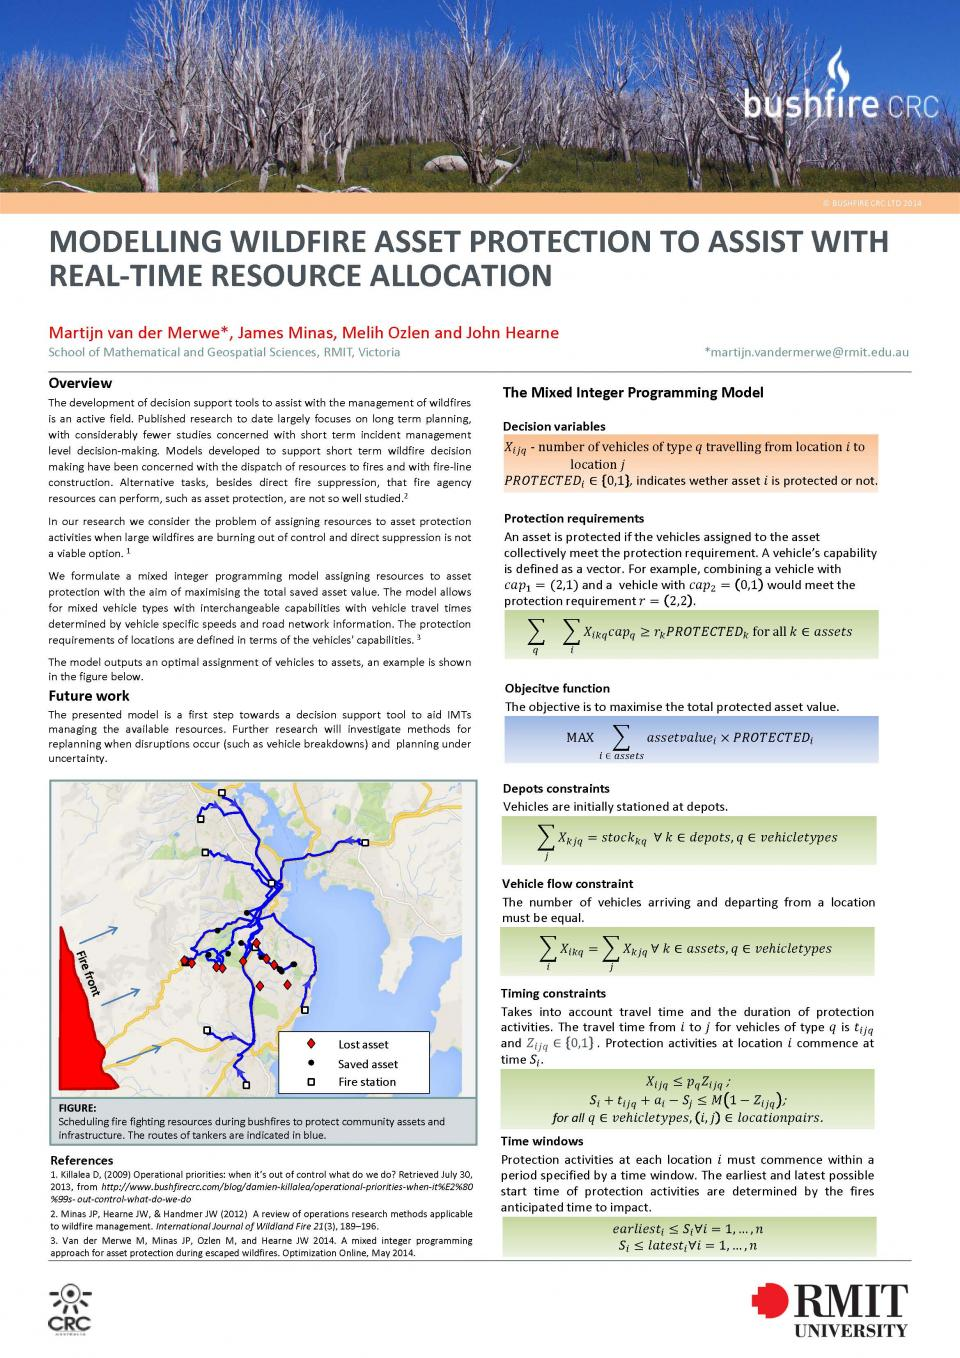 Modelling wildfire asset protection to assist with real-time resource allocation